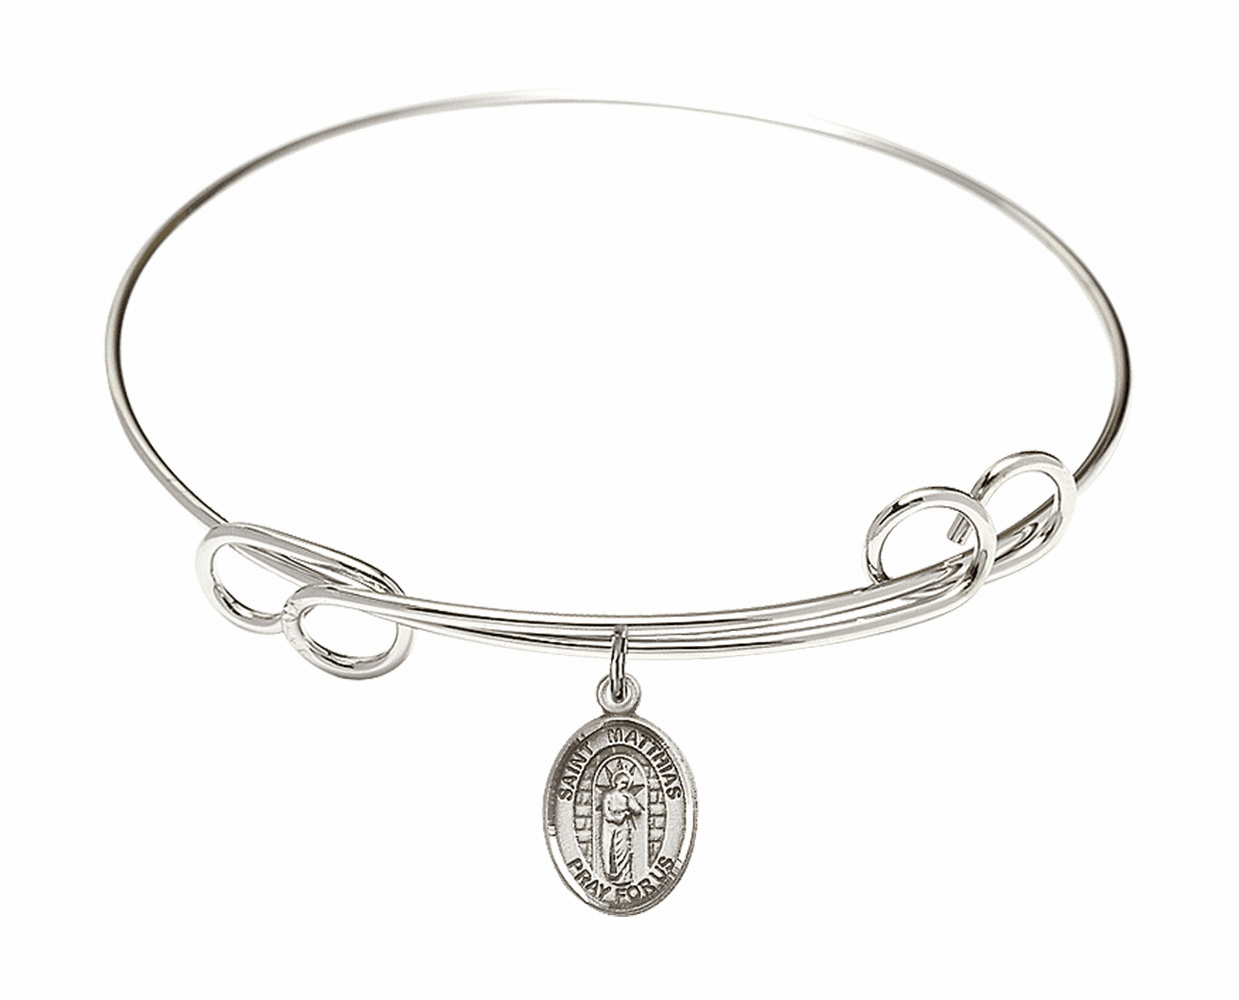 Round Loop St Matthias the Apostle Bangle Charm Bracelet by Bliss